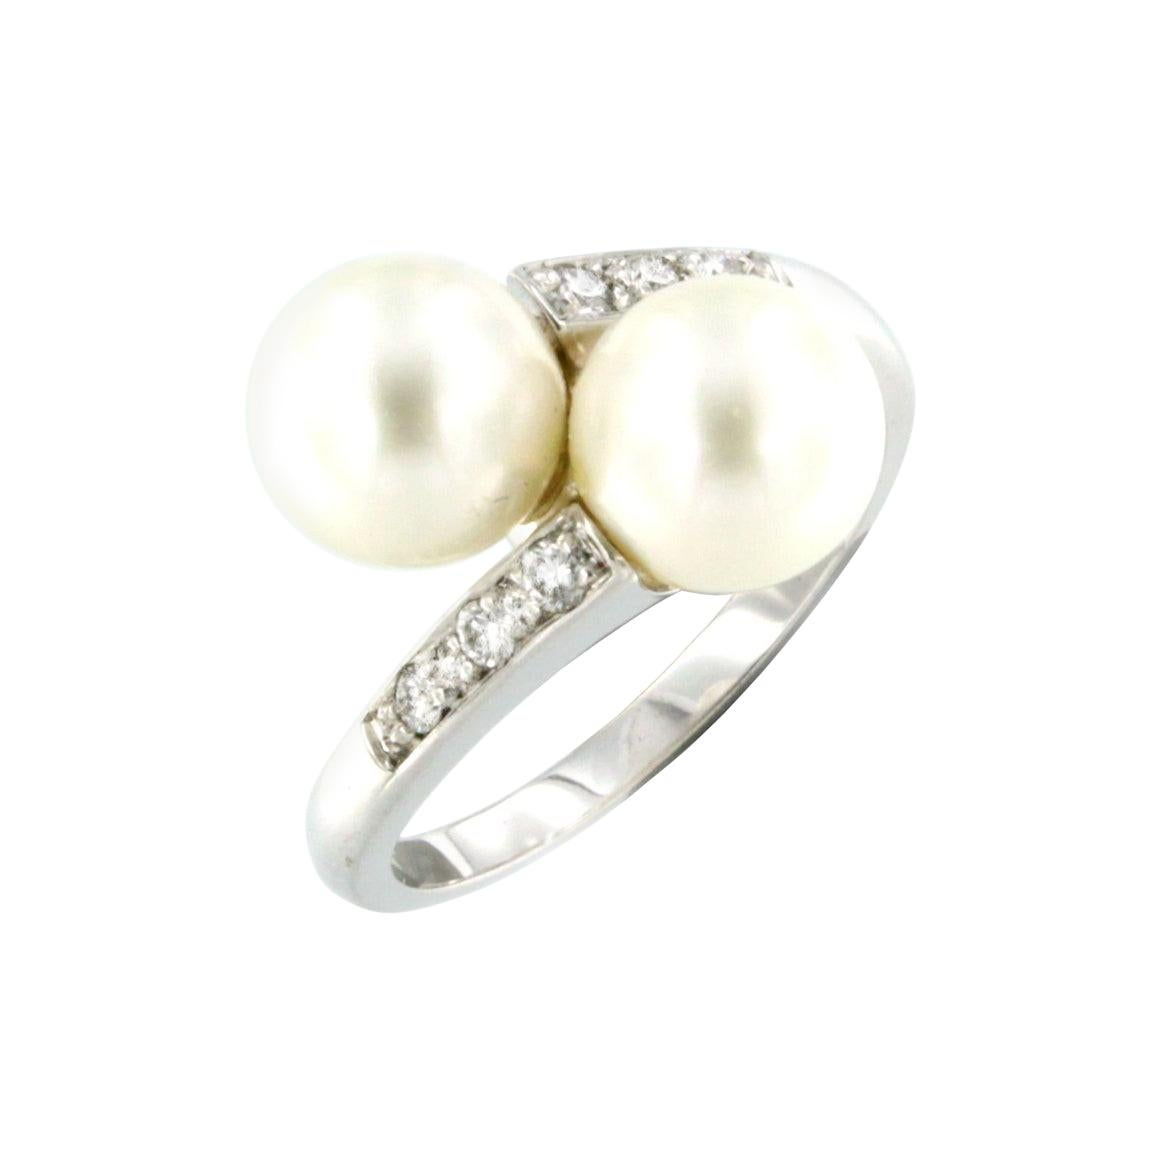 18Kt White Gold with White Diamonds and Pearls Ring